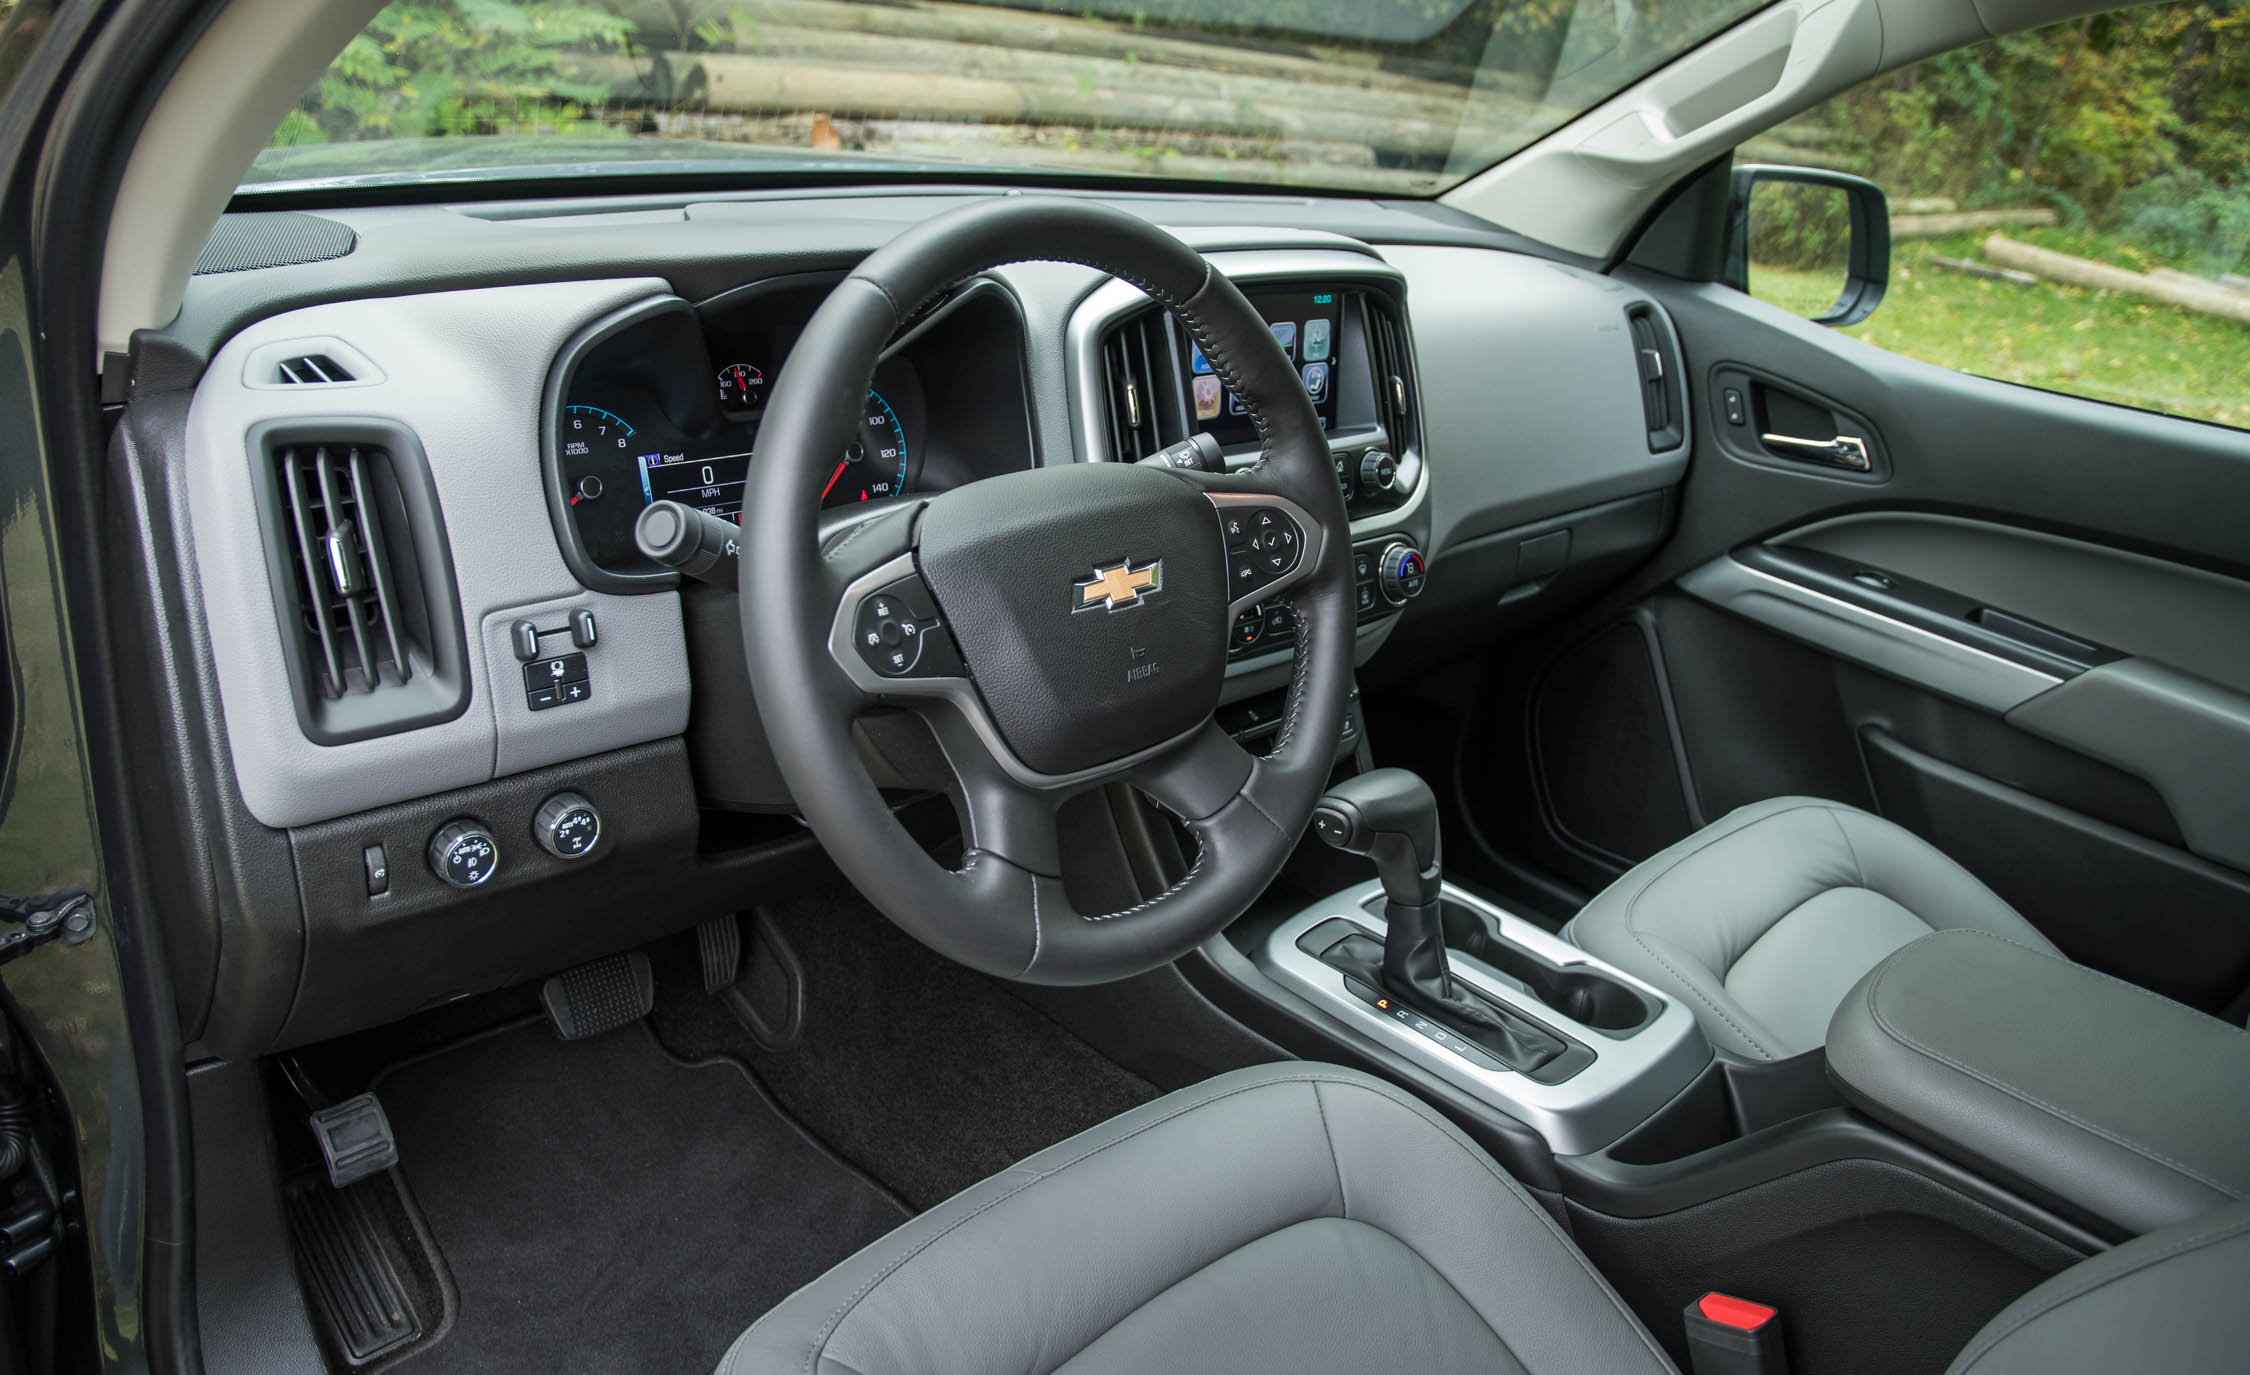 2017 Chevrolet Colorado LT Interior Cockpit Steering (View 22 of 41)